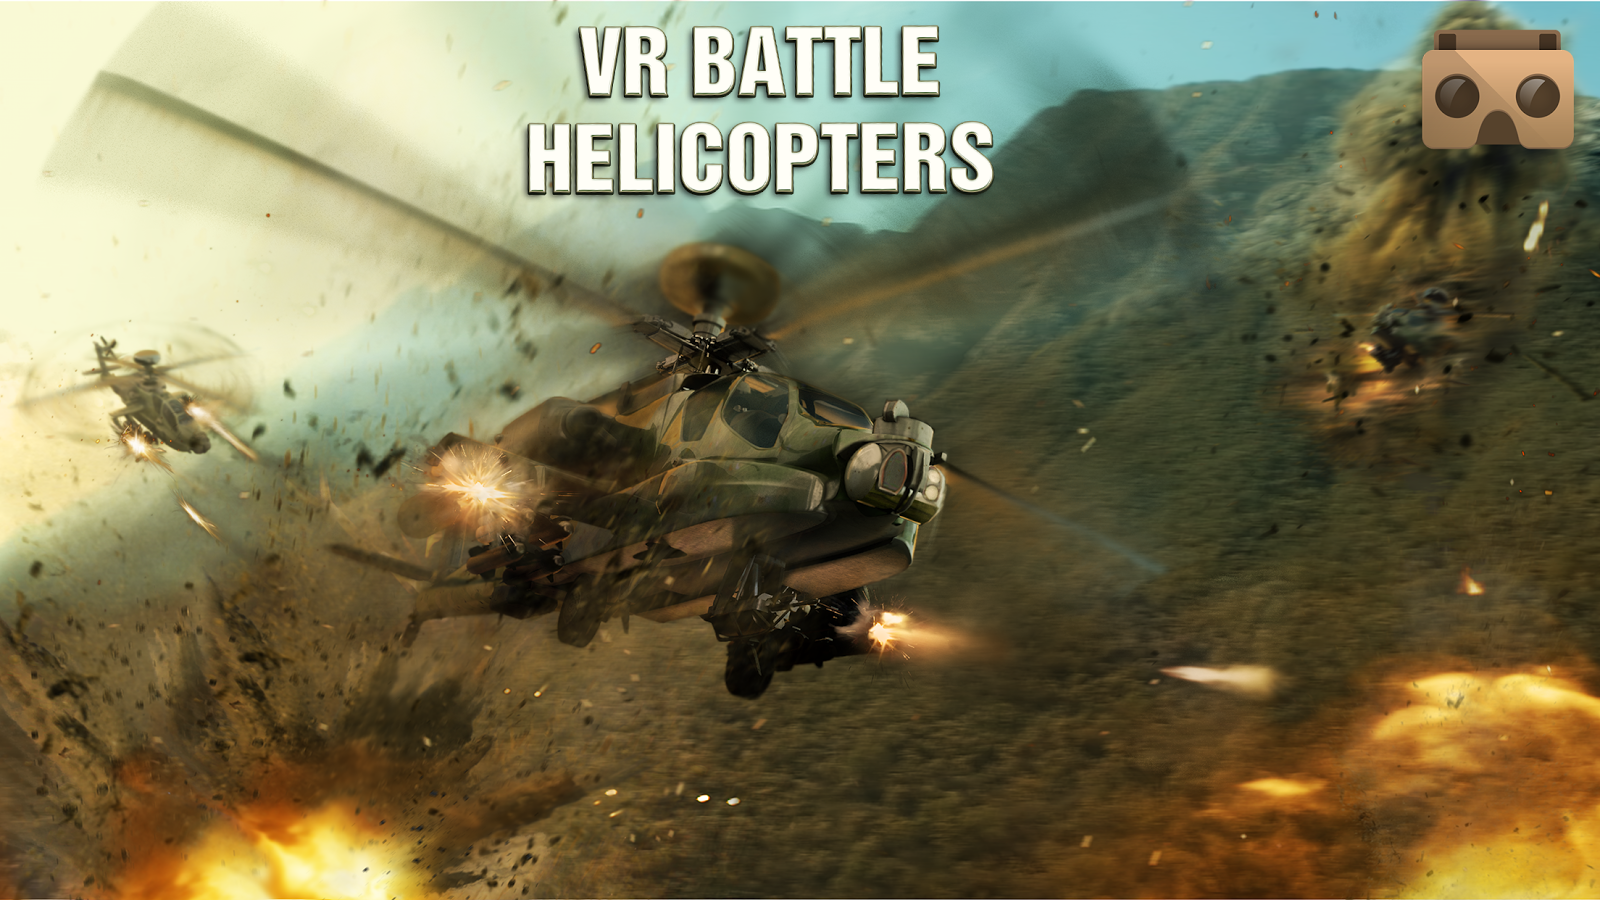 VR Battle Helicopters- tangkapan layar